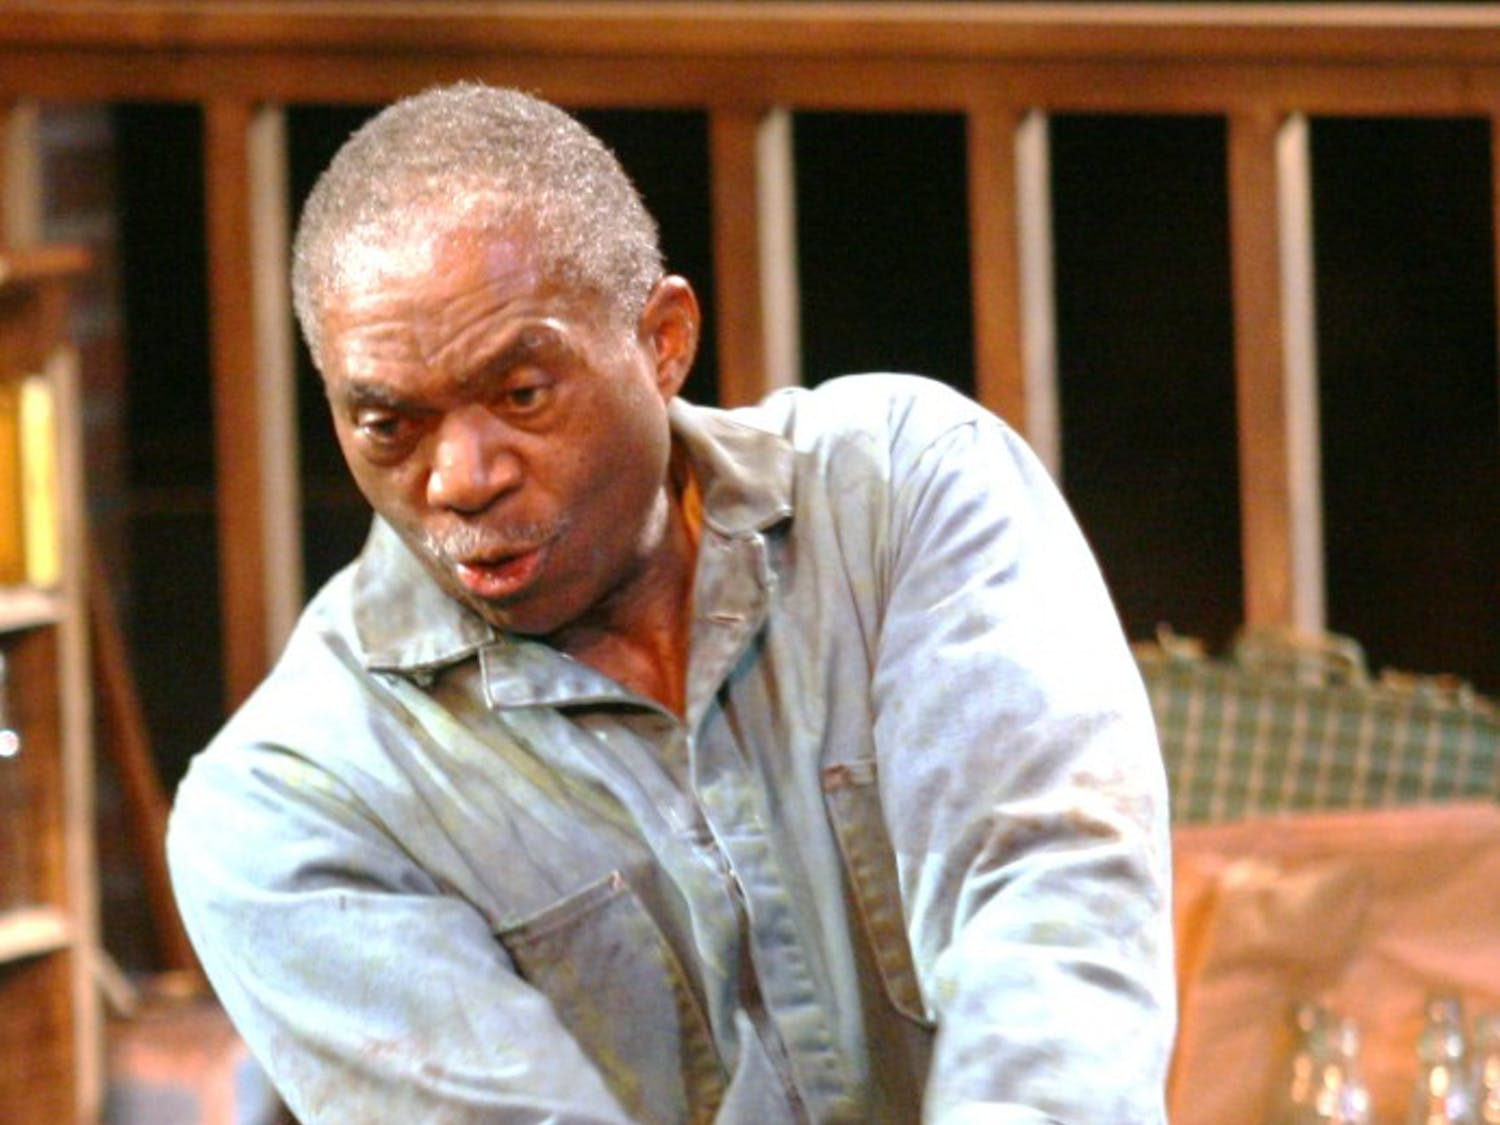 Charlie Robinson stars as Troy, a garbage man, in the play Fences at Paul Green Theatre. The play runs through November 14th.